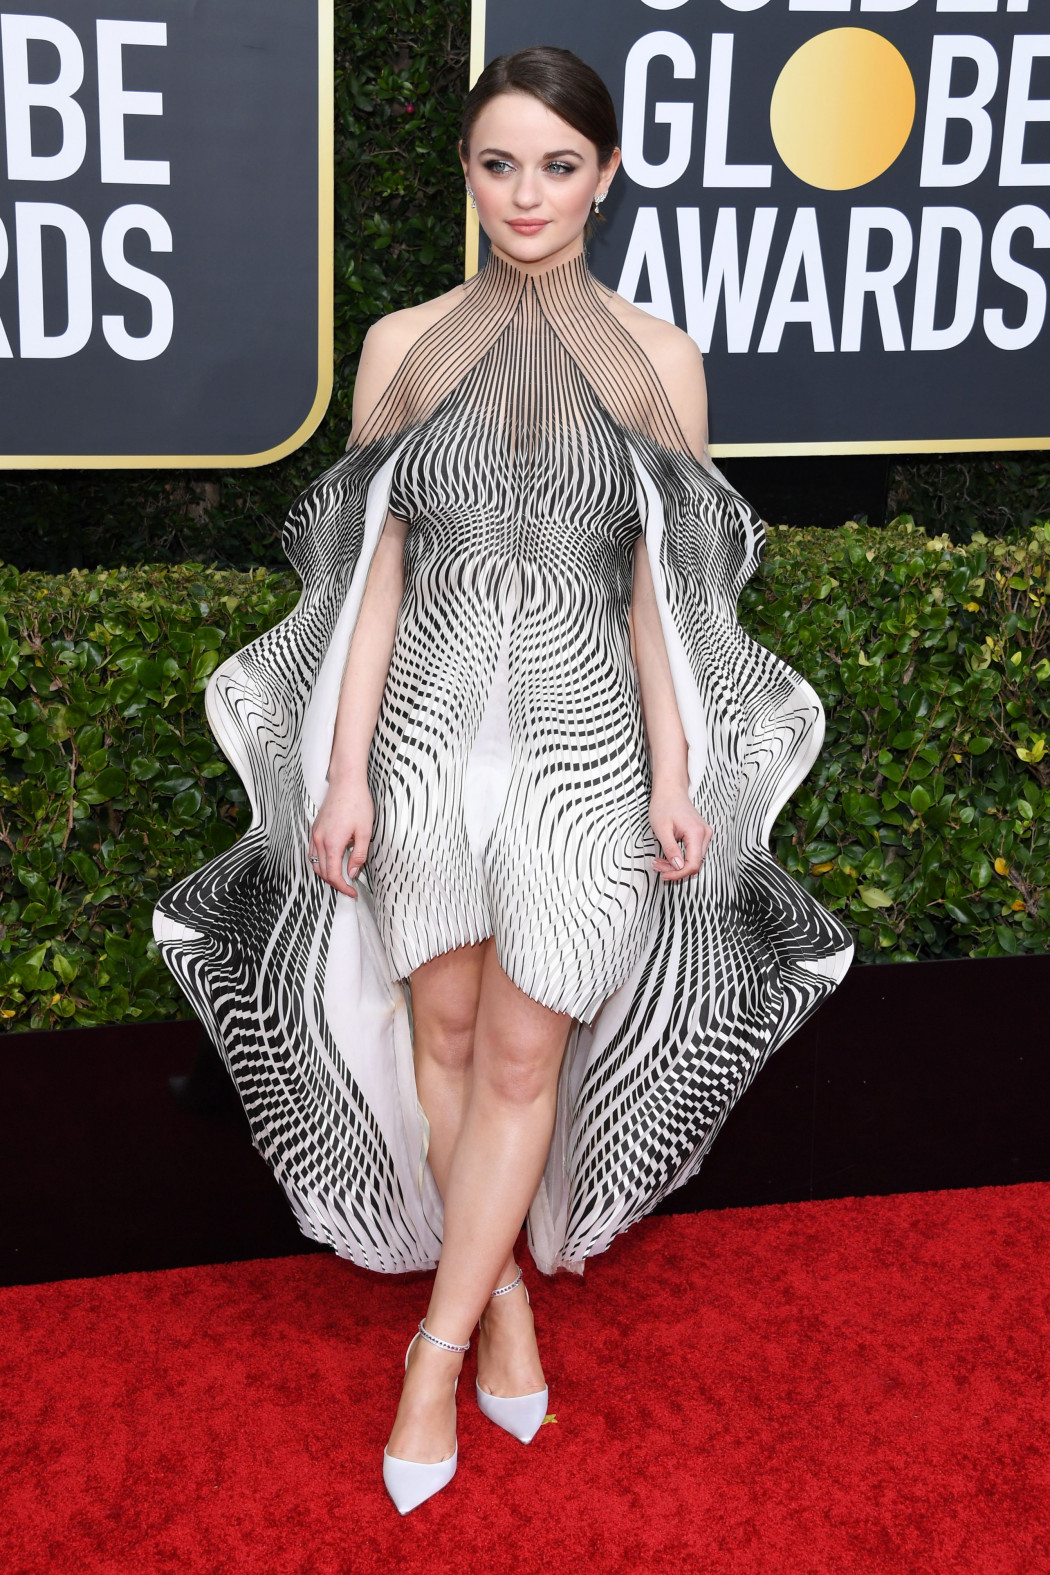 Golden Globes 2020 : les plus beaux looks du tapis rouge - 14